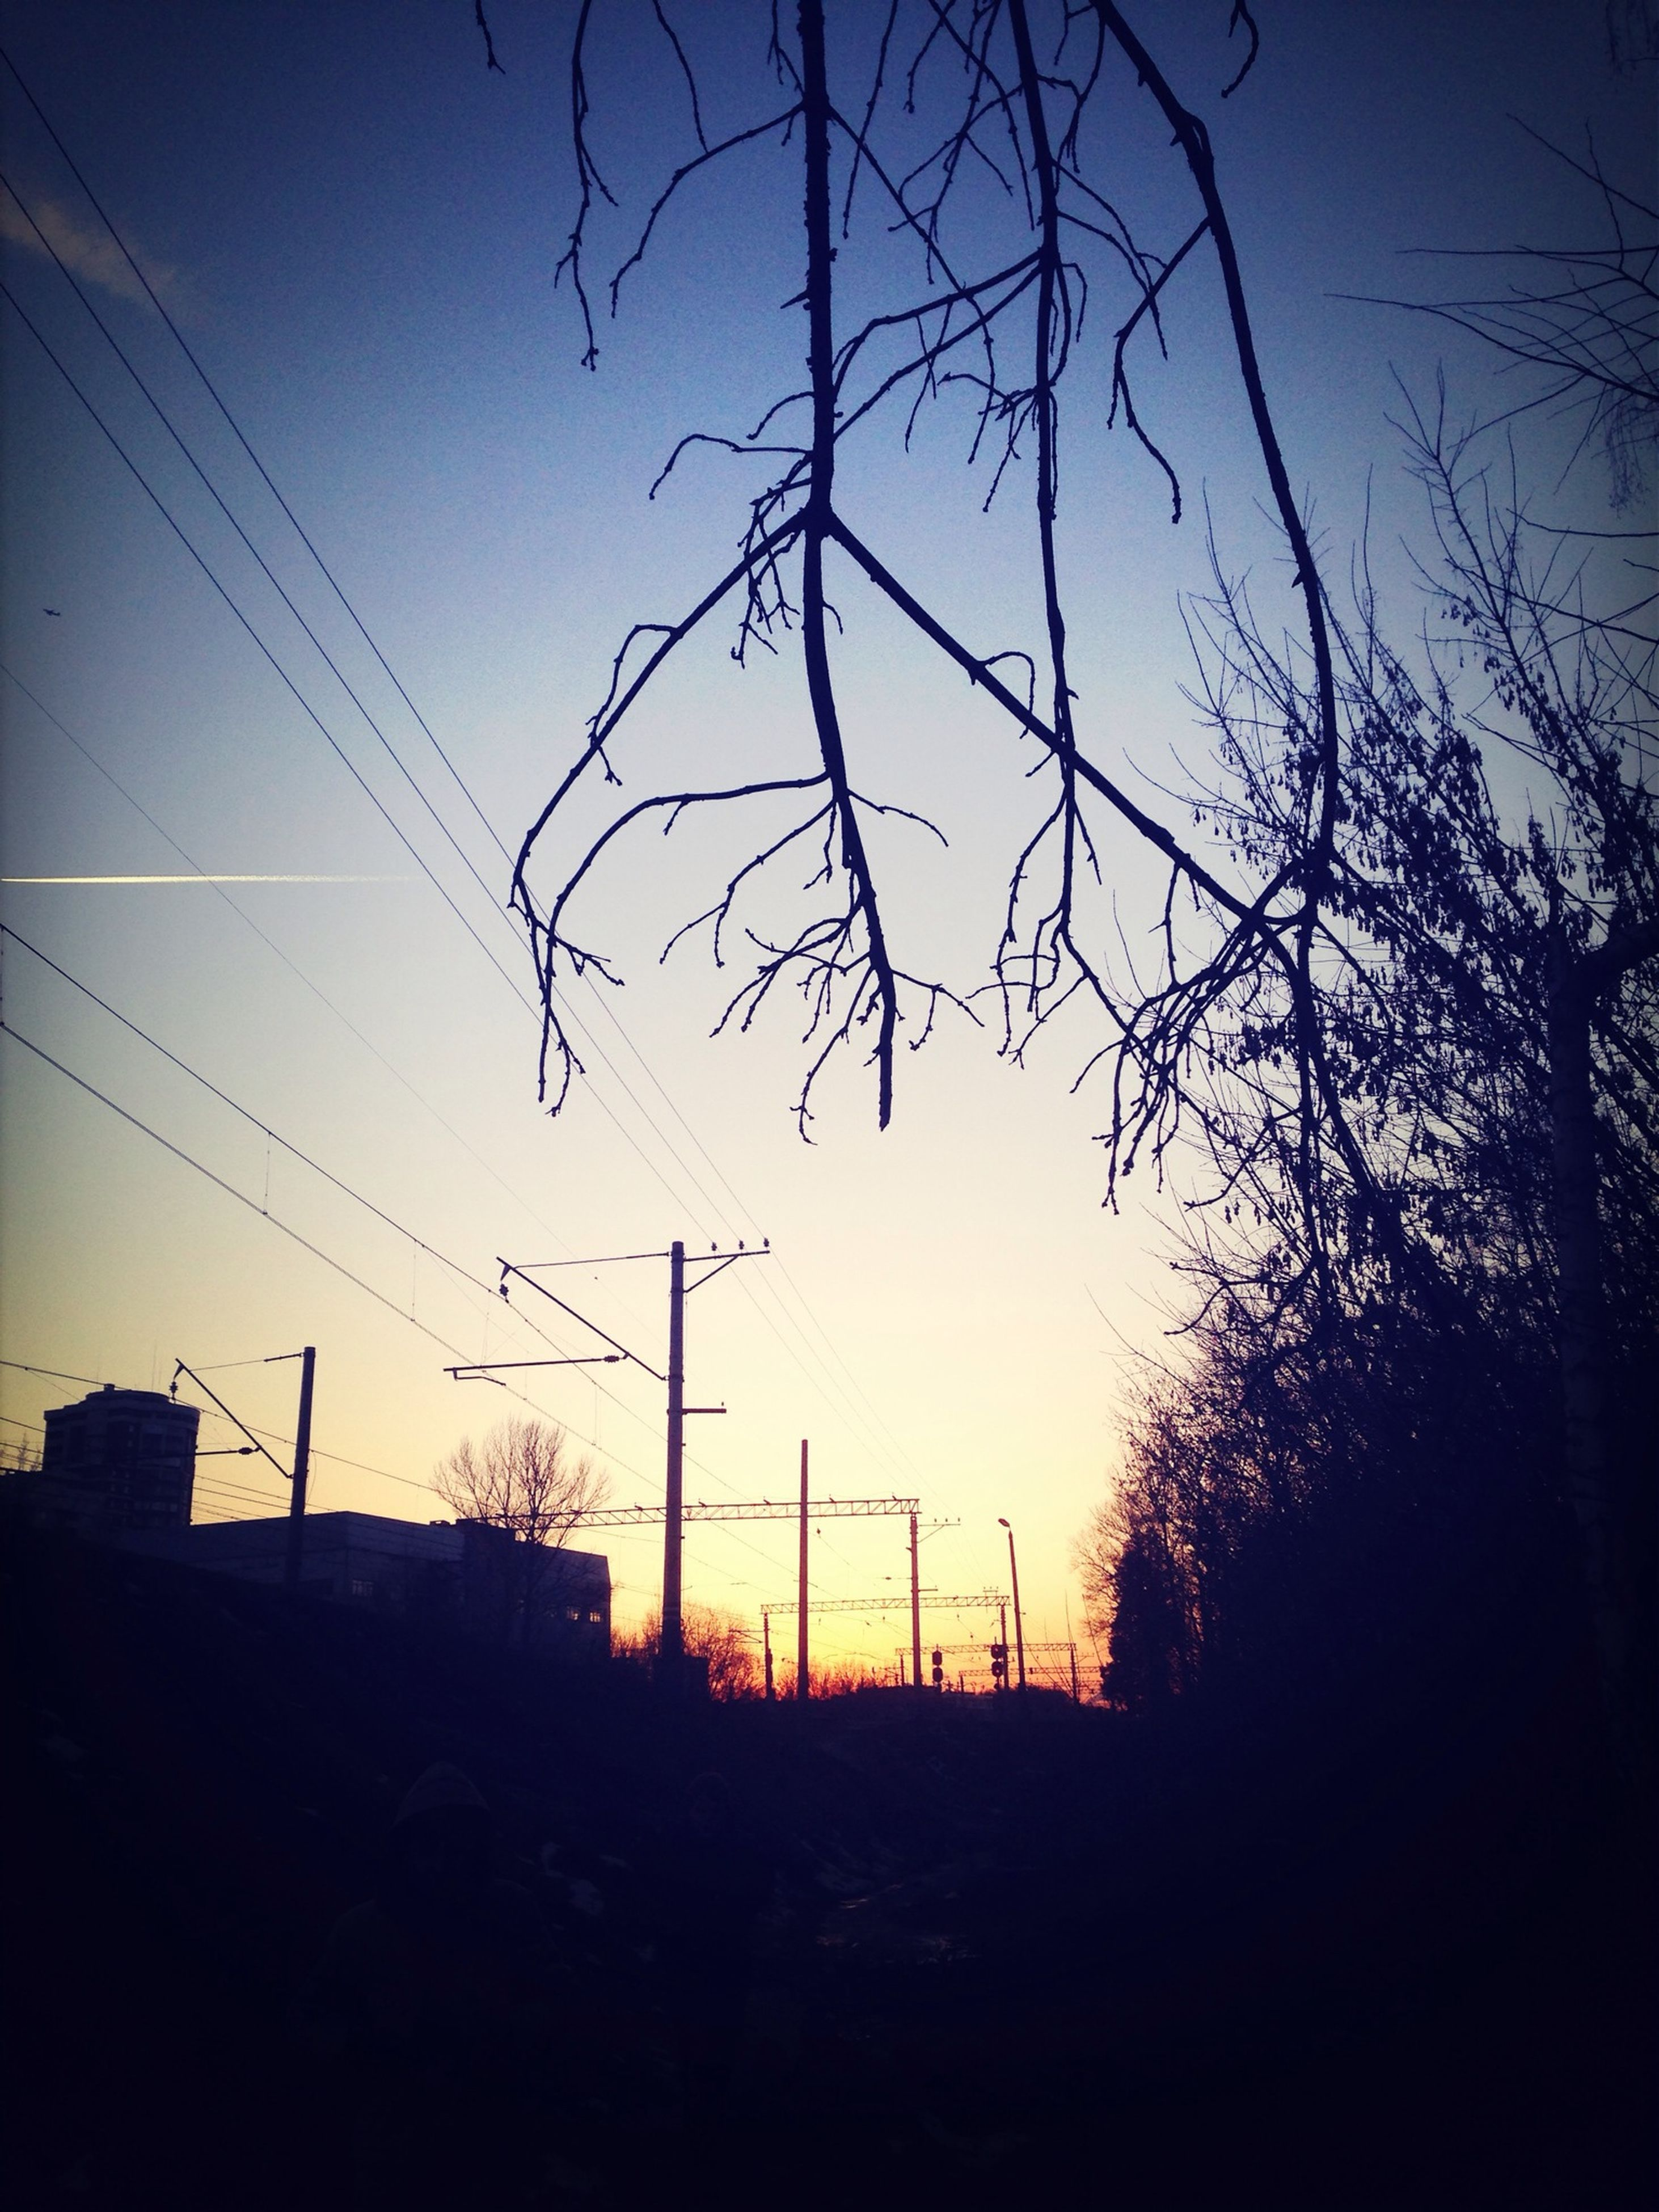 silhouette, sunset, clear sky, blue, sky, bare tree, tree, low angle view, tranquility, dusk, nature, electricity pylon, branch, landscape, beauty in nature, dark, fence, copy space, scenics, tranquil scene